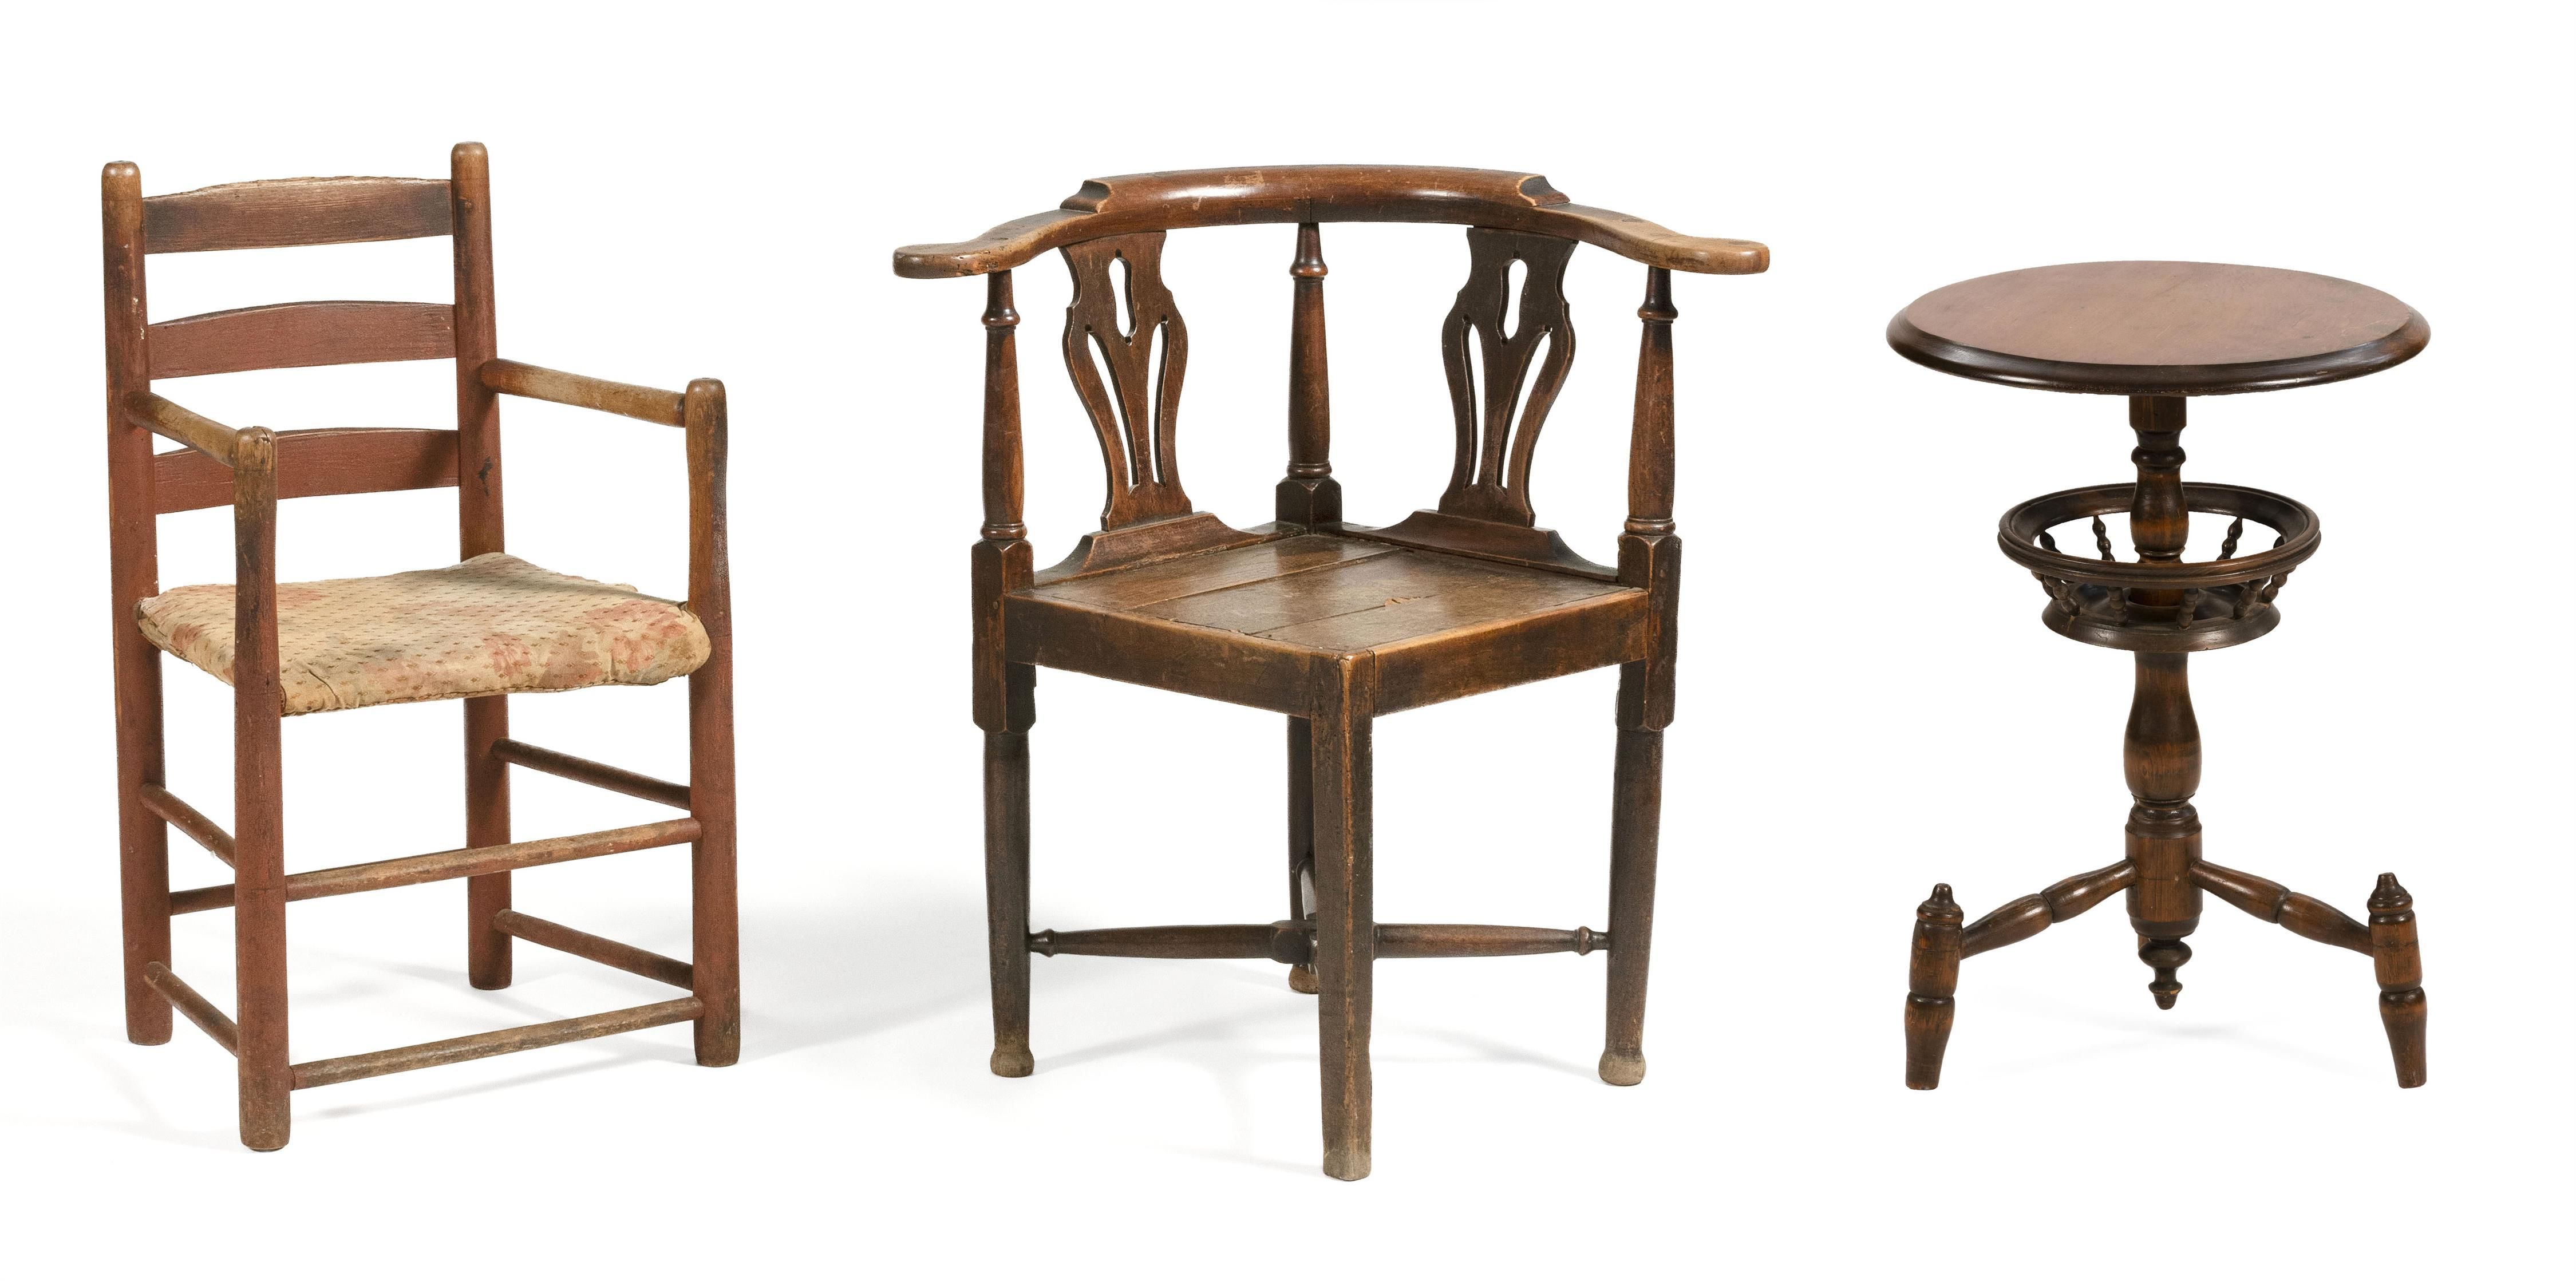 """TWO CHAIRS 1) Corner chair with pierced splats and turned stretchers. Back height 30.5"""". Seat height 17.5"""". 2) Child's ladderback ar.."""